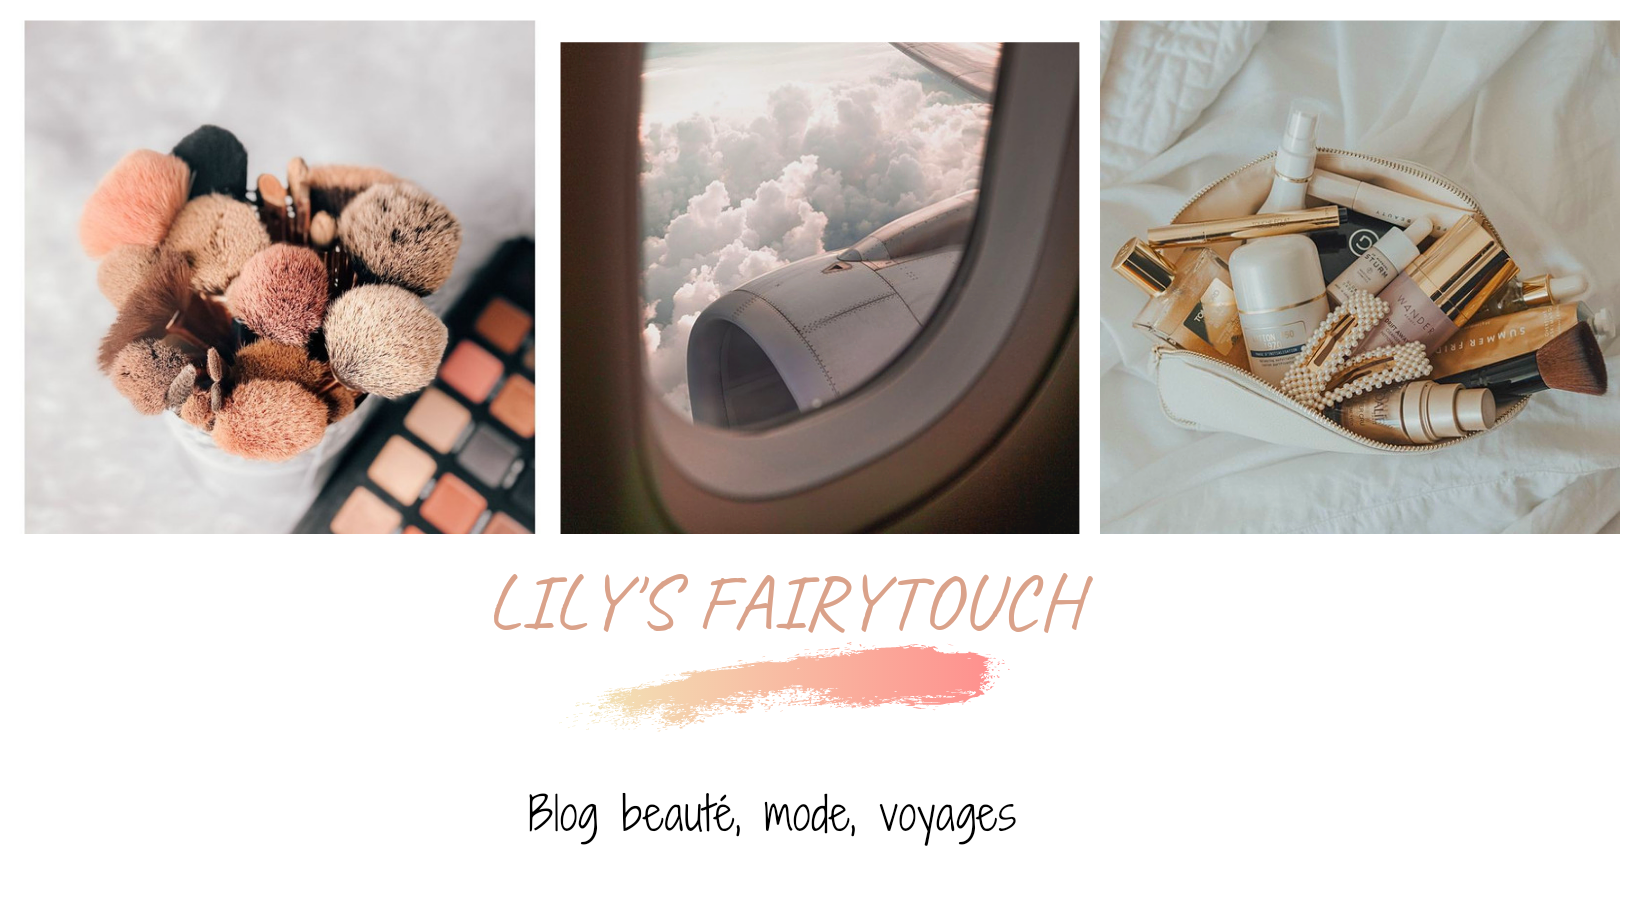 Lily's Fairy Touch